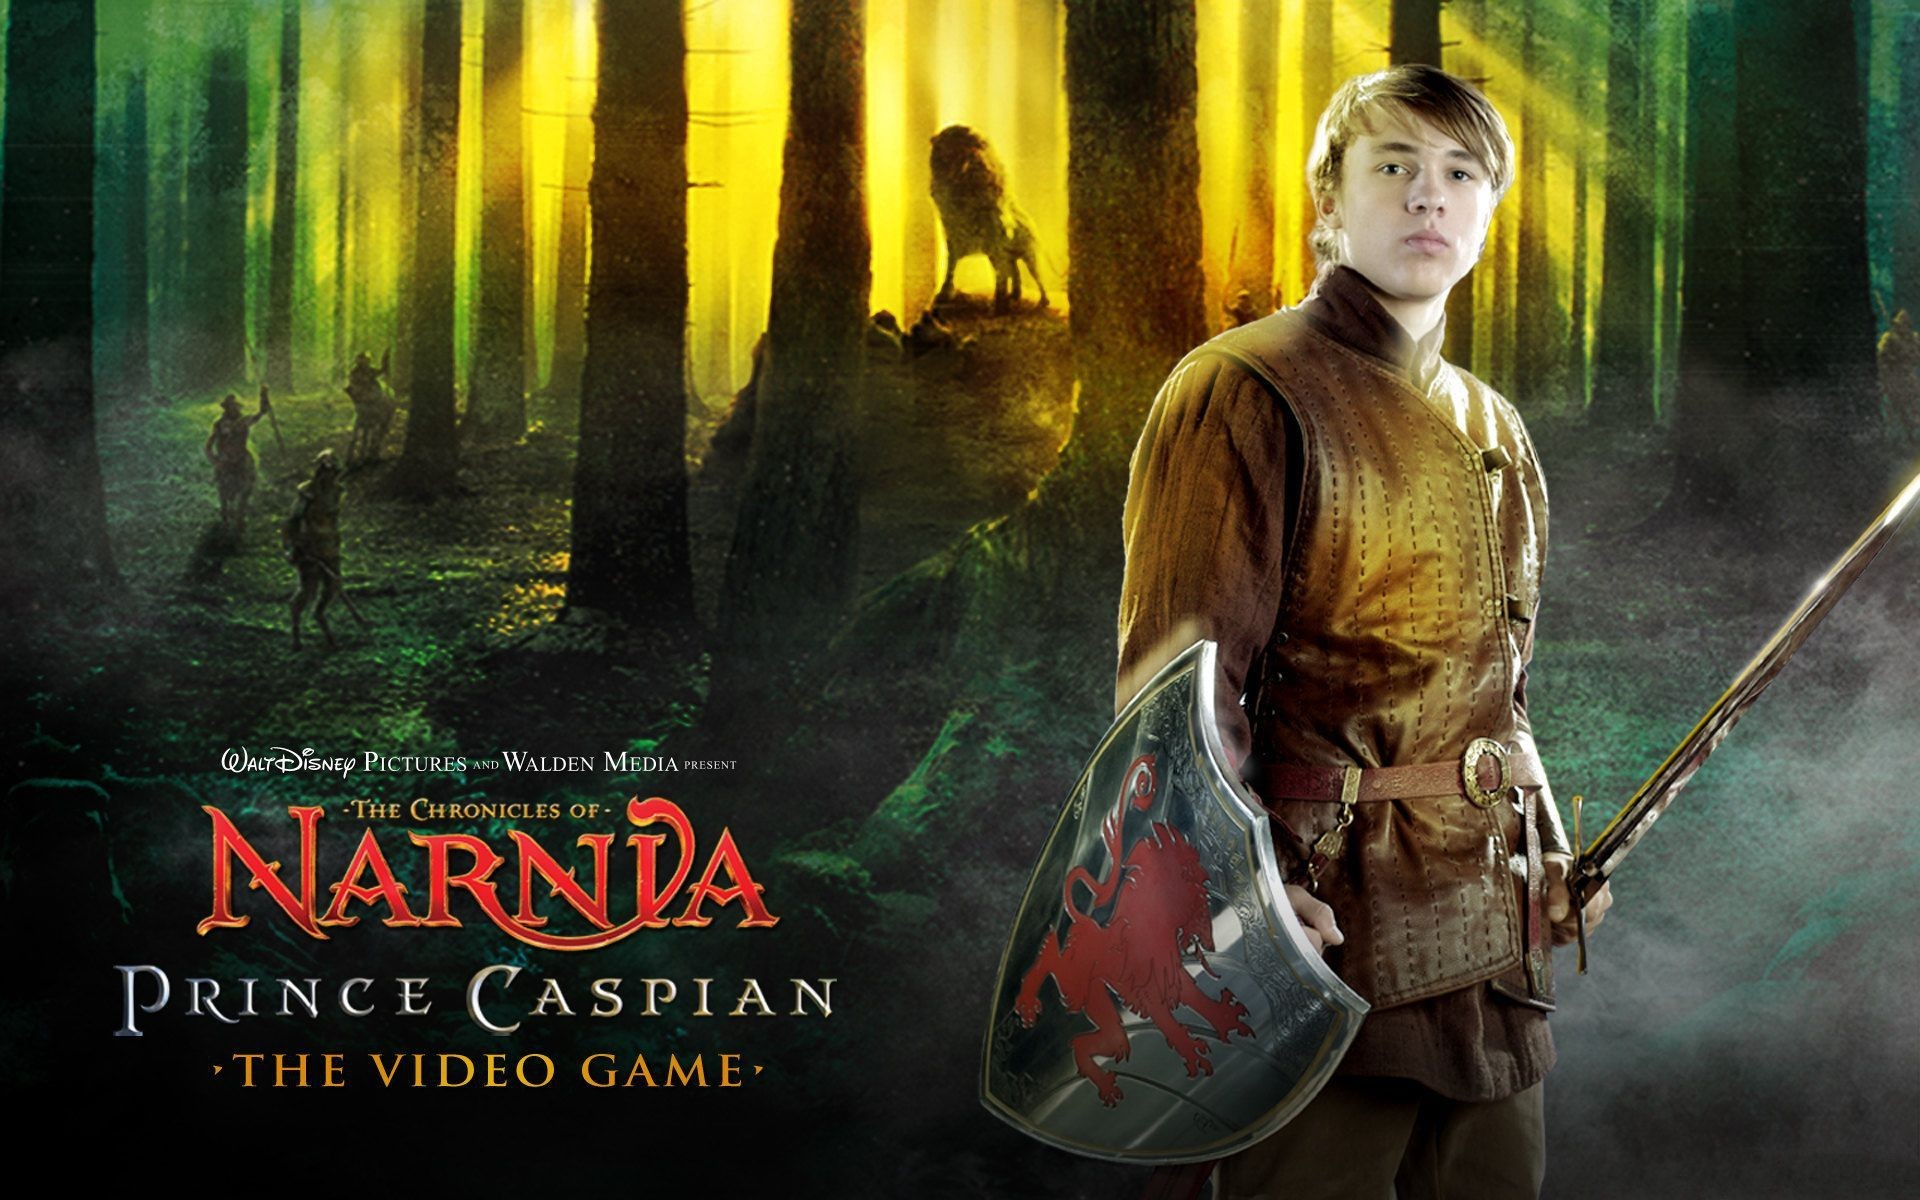 Res: 1920x1200, free aslan narnia background hd wallpapers apple artworks high definition  samsung wallpapers wallpaper for iphone free download 1920×1200 Wallpaper HD